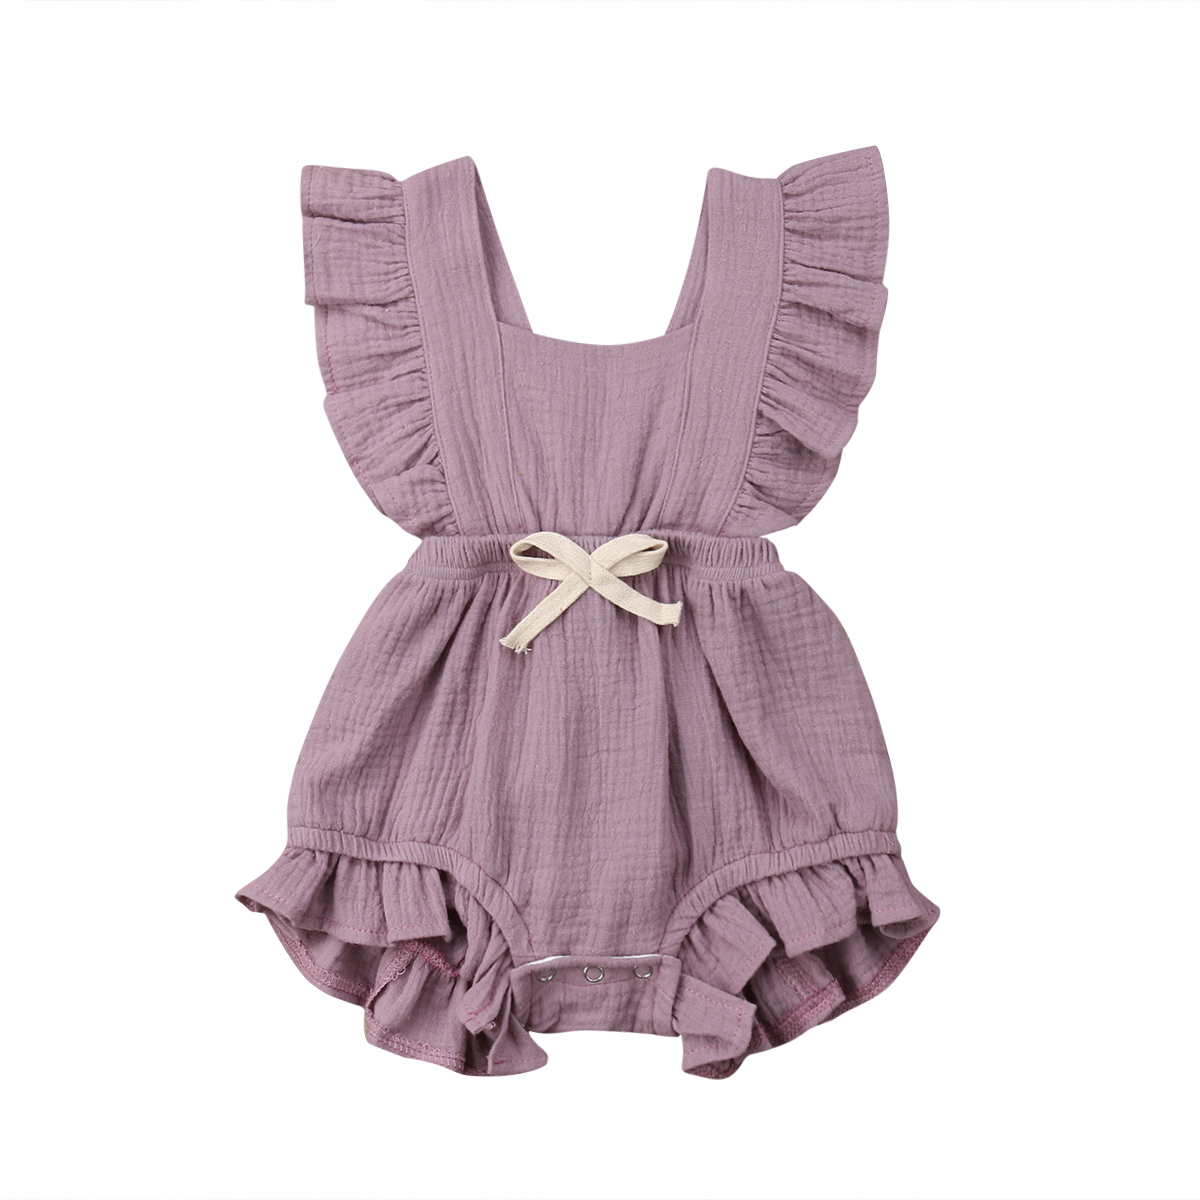 6 Color Cute Baby Girl Ruffle Solid Color Romper  Jumpsuit Outfits Sunsuit for Newborn Infant Children Clothes Kid Clothing(China)